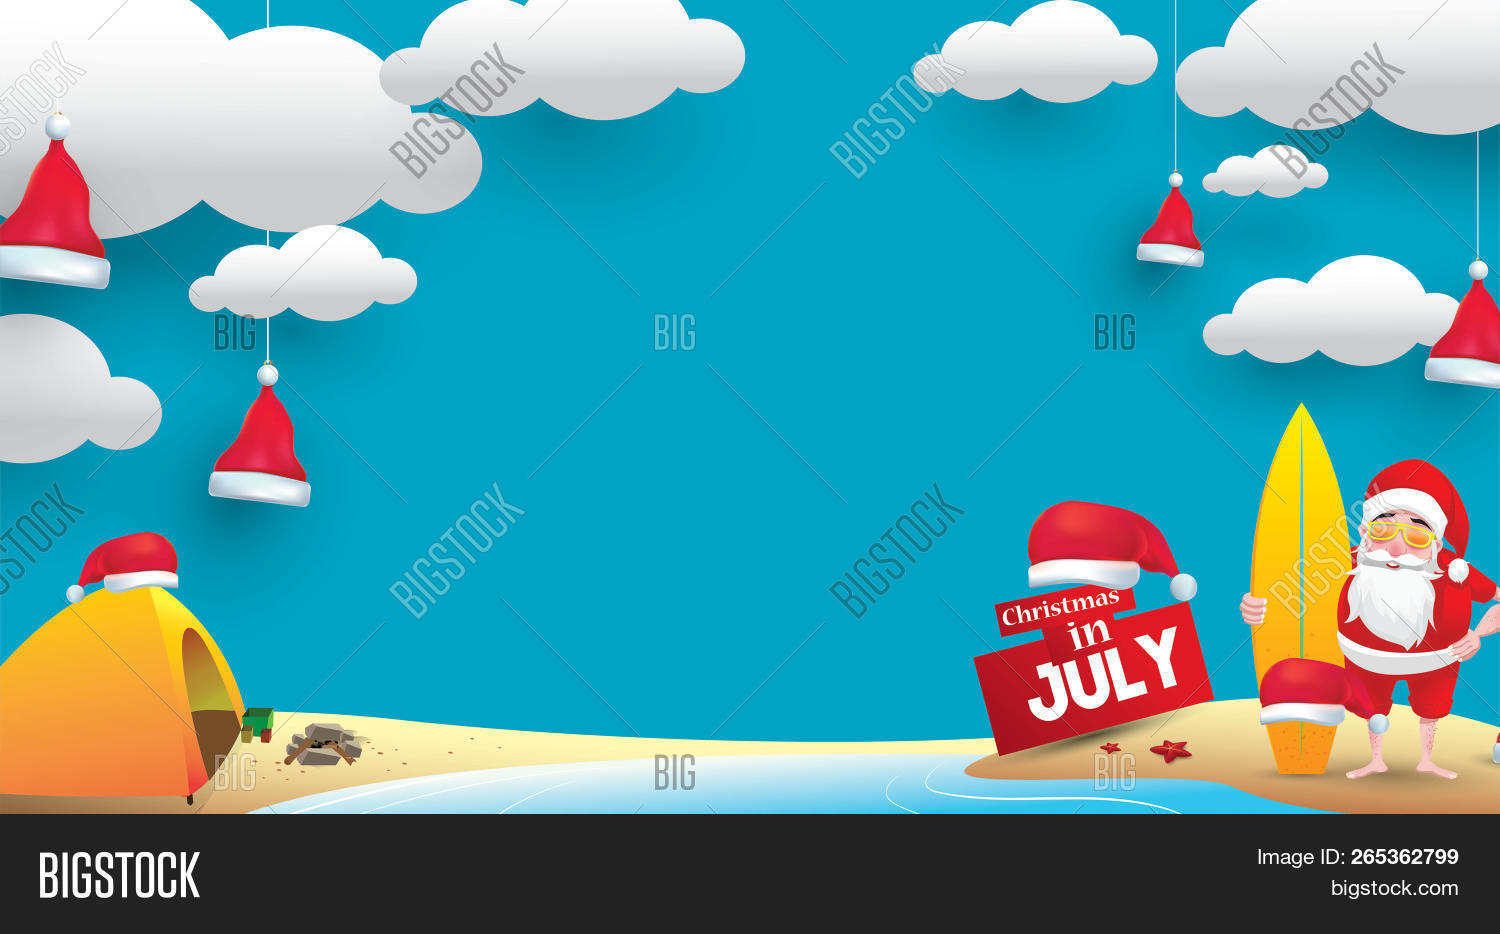 Christmas In July Santa Clipart.Christmas July Design Image Photo Free Trial Bigstock